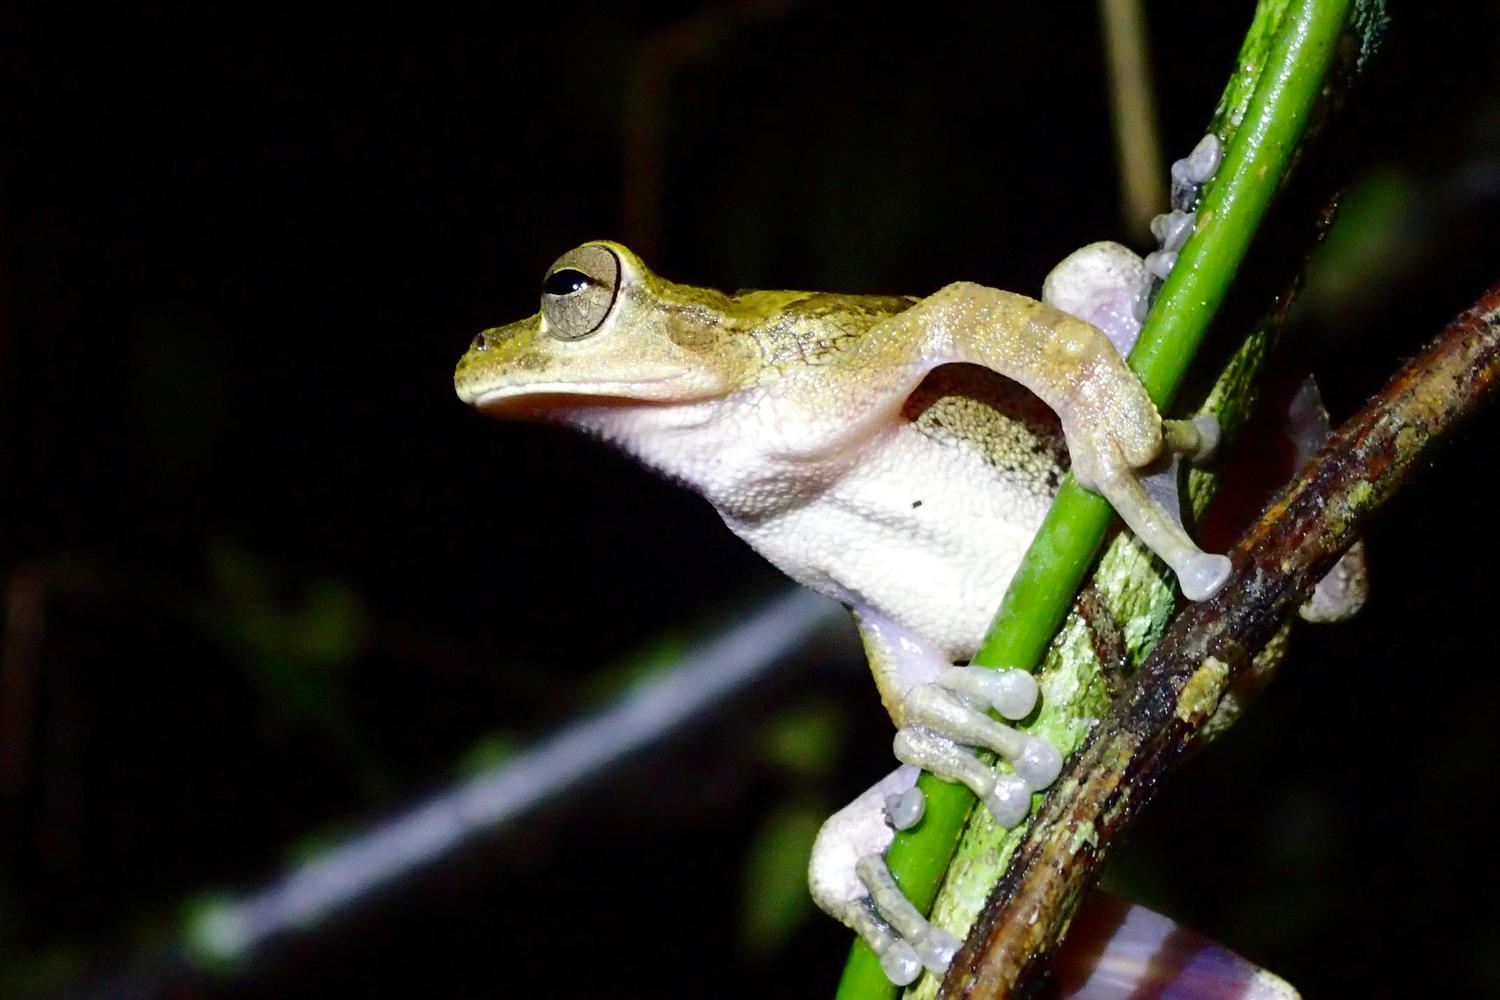 Tree frog spotted on a night walk, Osa Peninsula